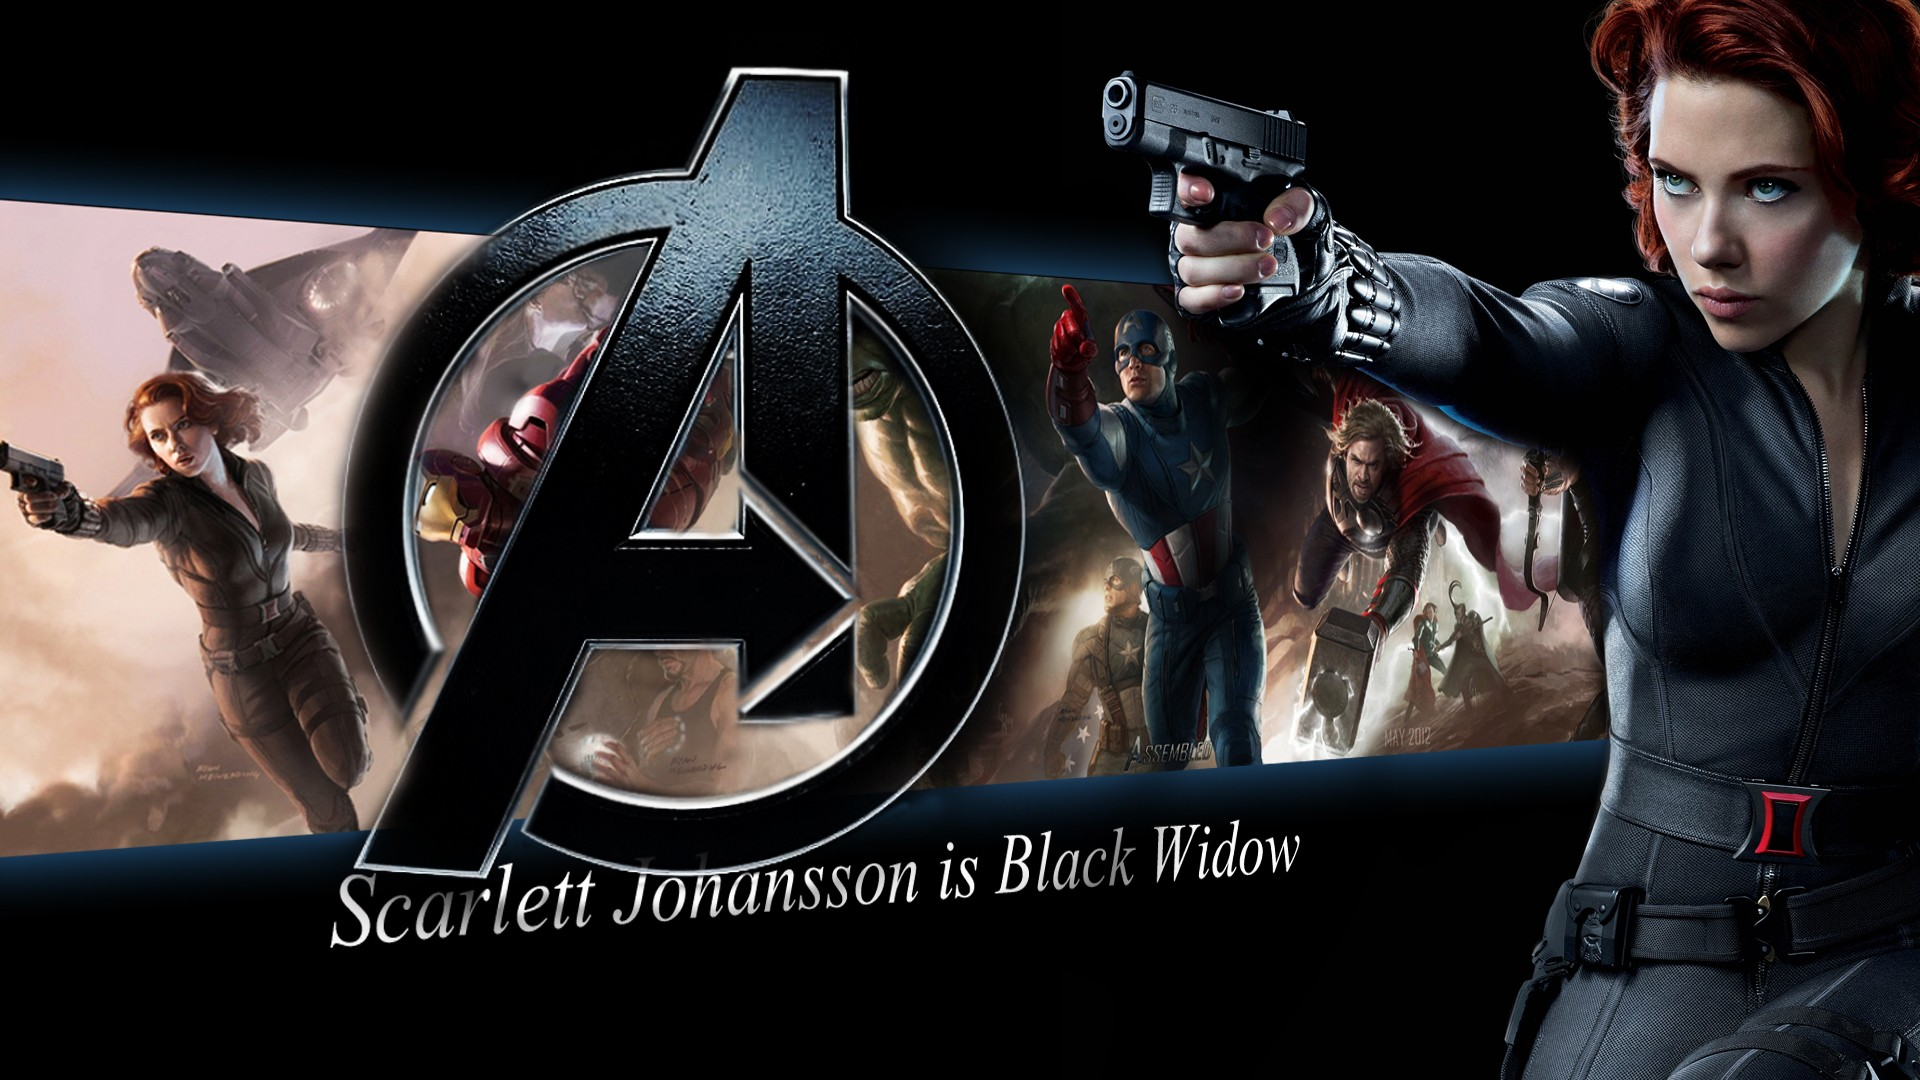 black widow avengers movie poster black widow avengers movie image